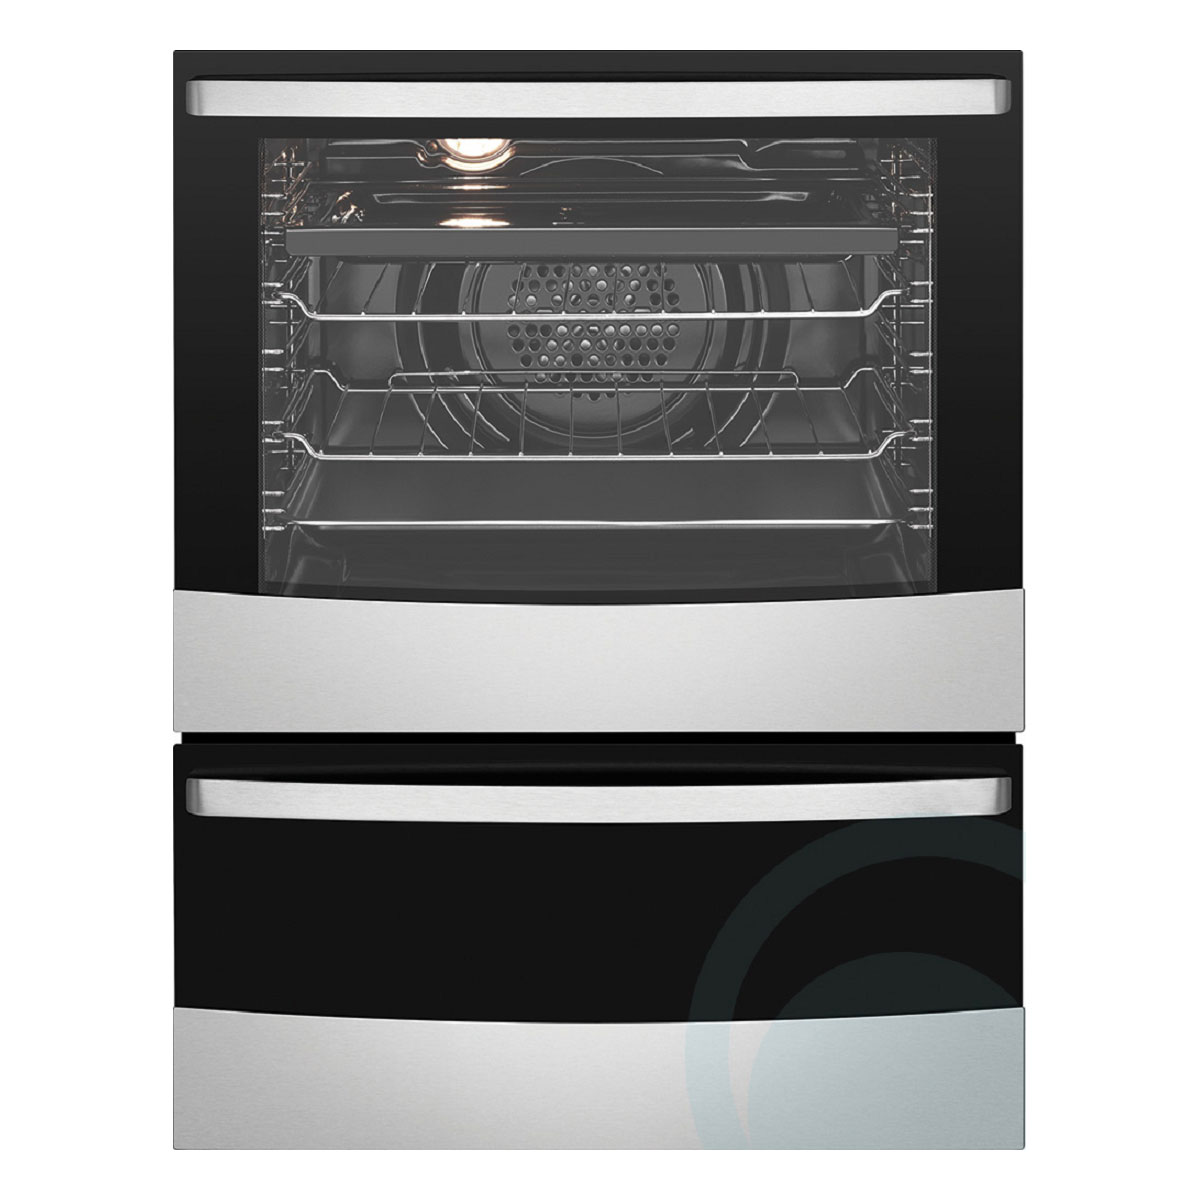 Westinghouse WVE665S Built-In Oven 27013